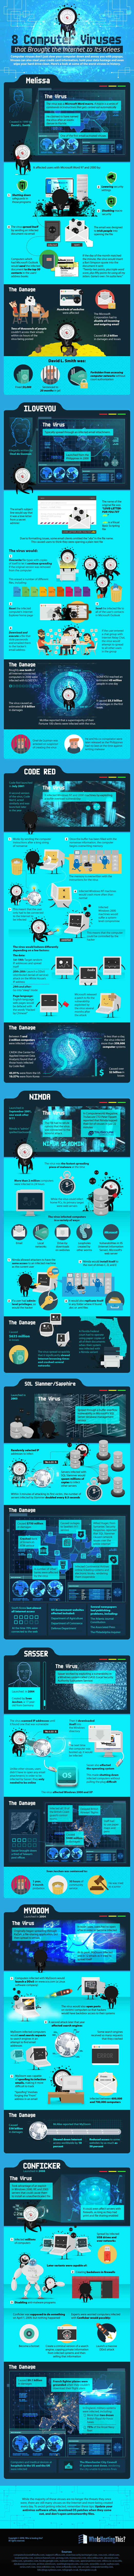 8 Computer Viruses That Launched A Deadly Assault On The Internet (infographic)